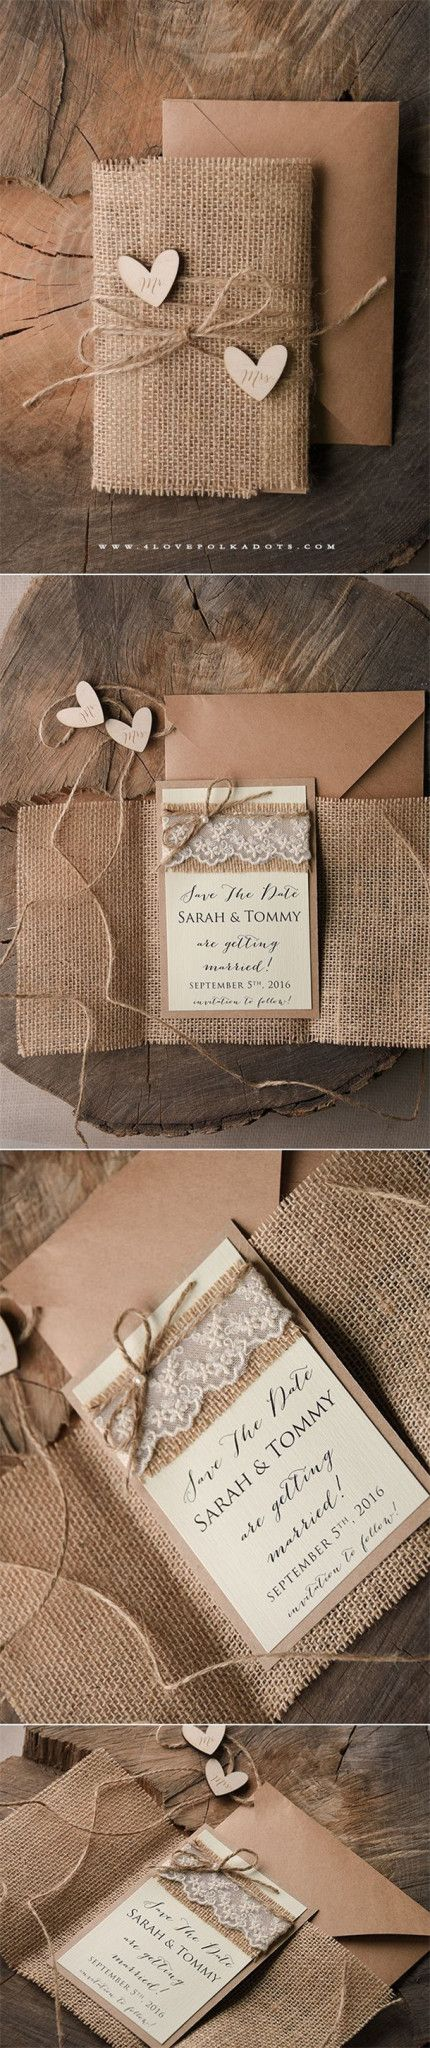 Rustic country burlap string lights lace wedding card - 30 Gorgeous Rustic Burlap Wedding Ideas